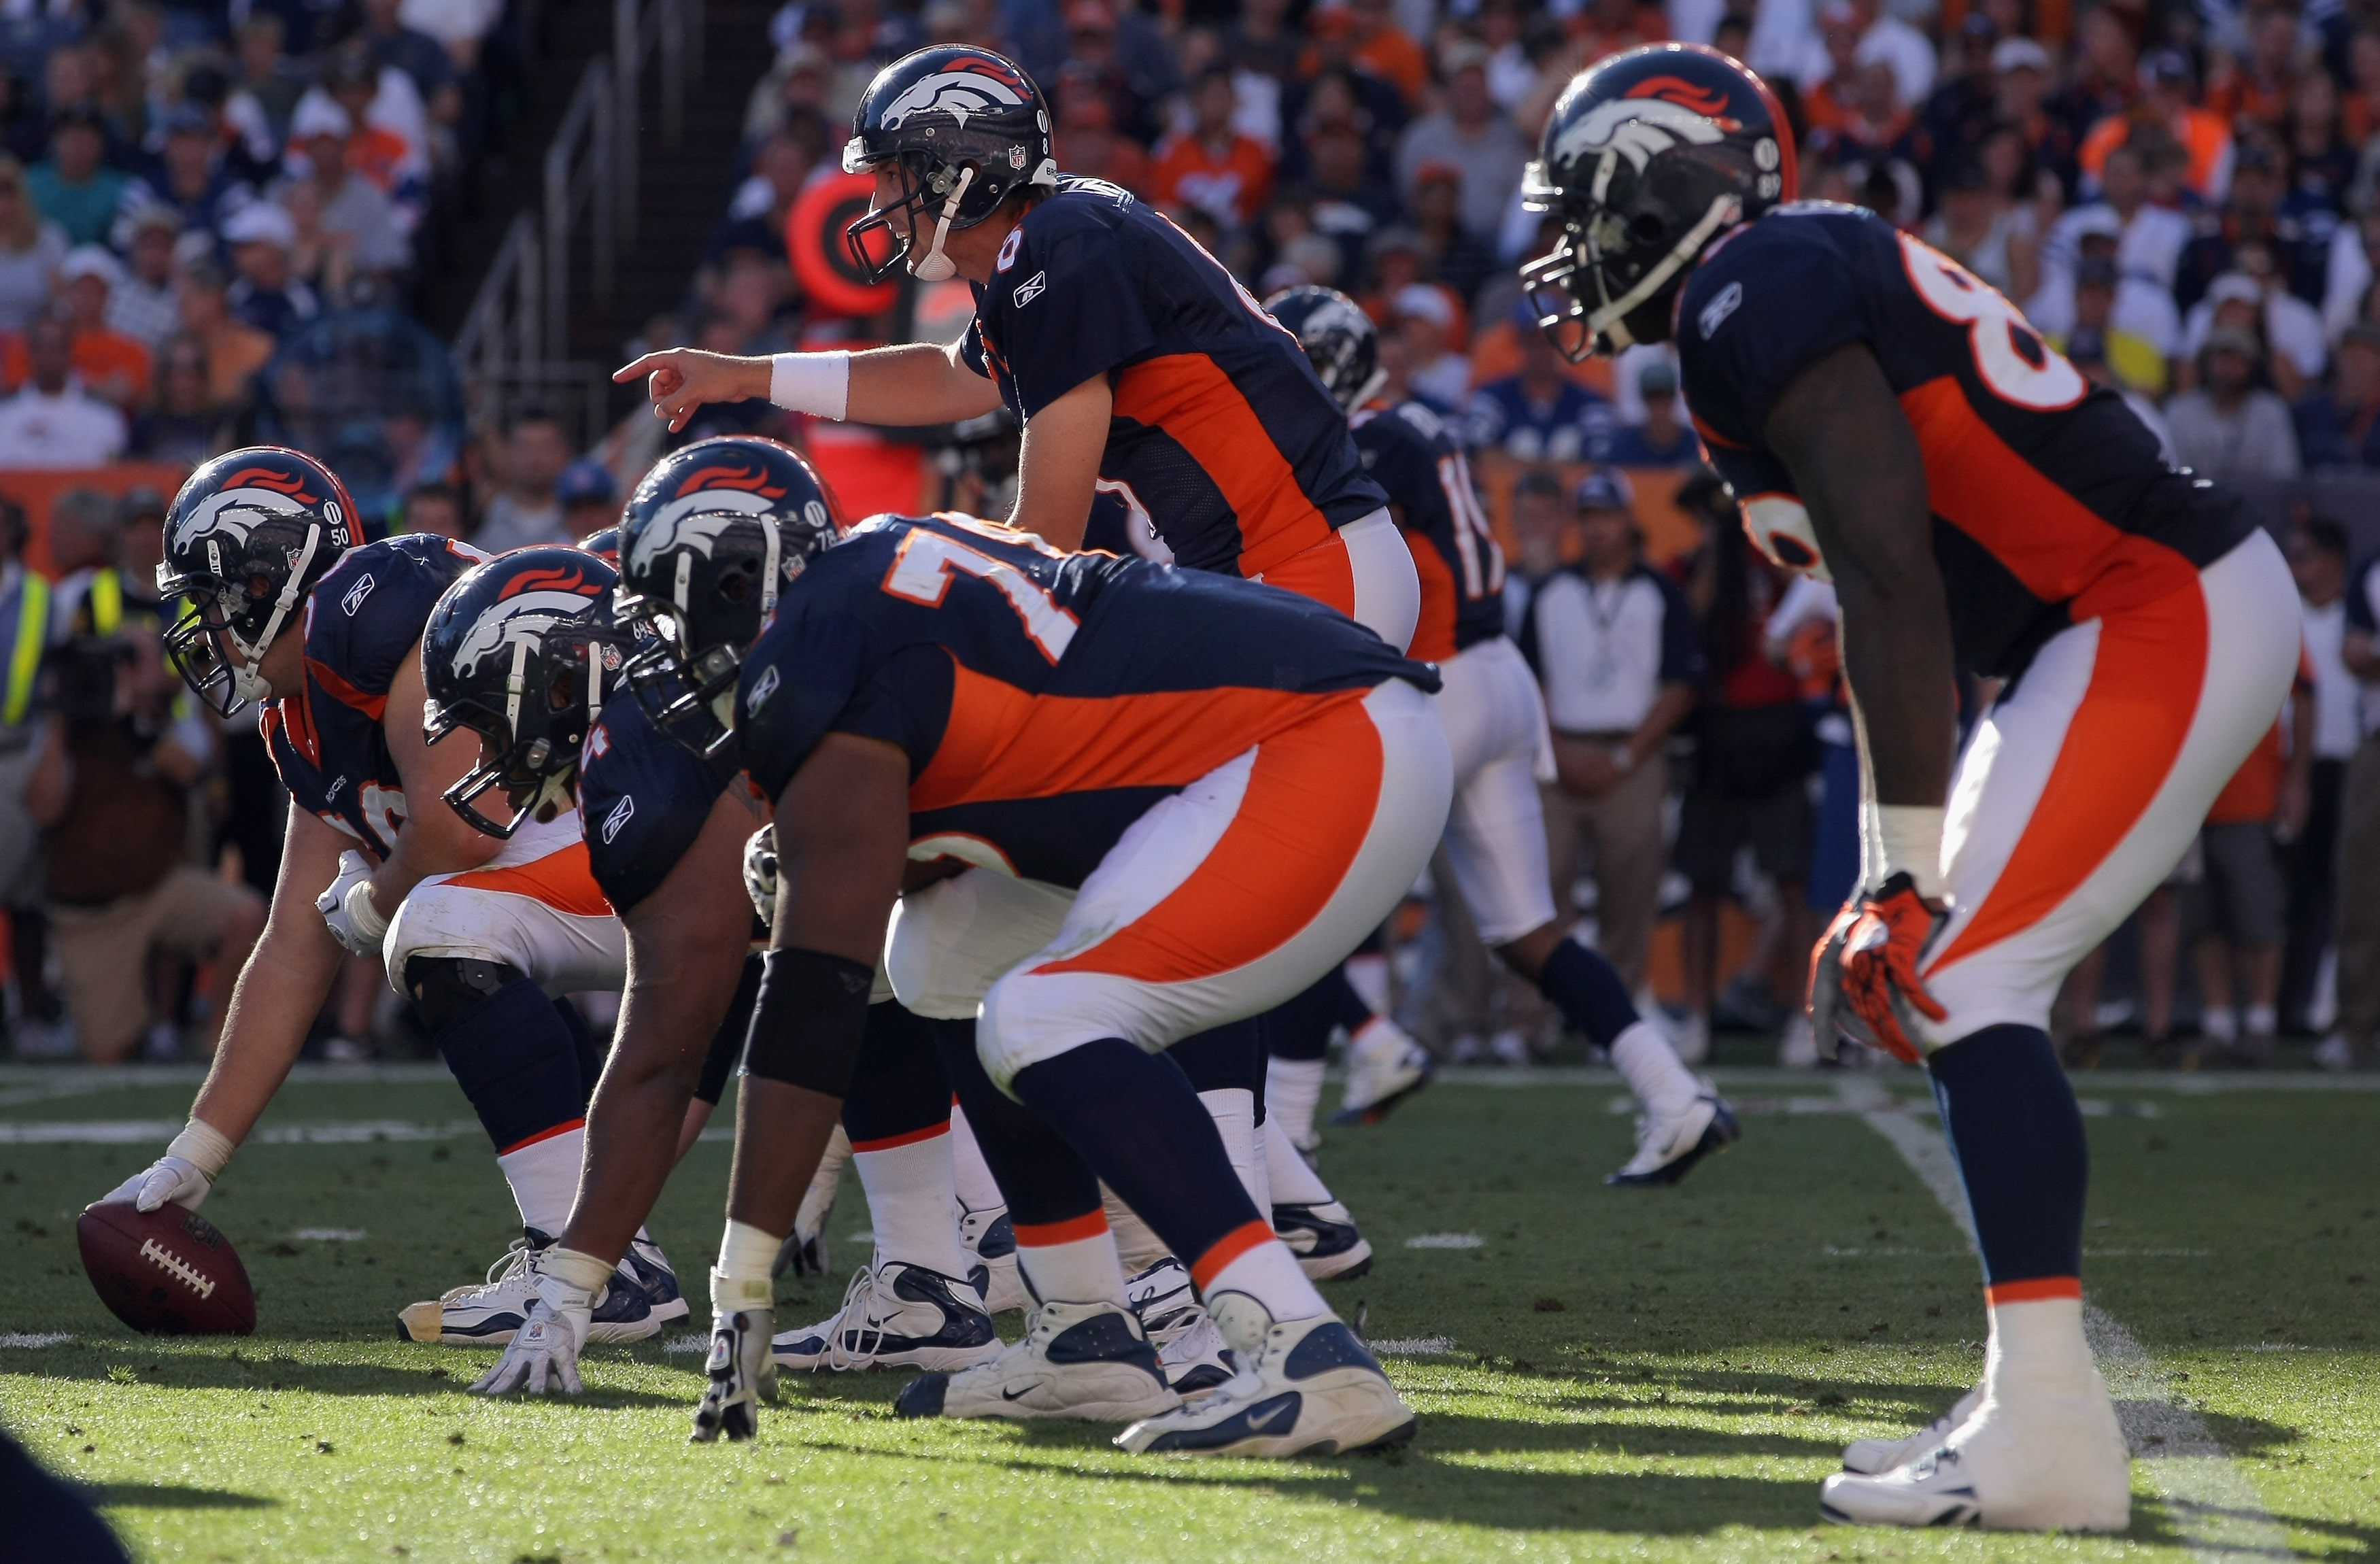 DENVER - SEPTEMBER 26:  Quarterback Kyle Orton #8 of the Denver Broncos runs the offense against the Indianapolis Colts at INVESCO Field at Mile High on September 26, 2010 in Denver, Colorado. Orton passed for 476 yards as the Colts defeated the Broncos 2